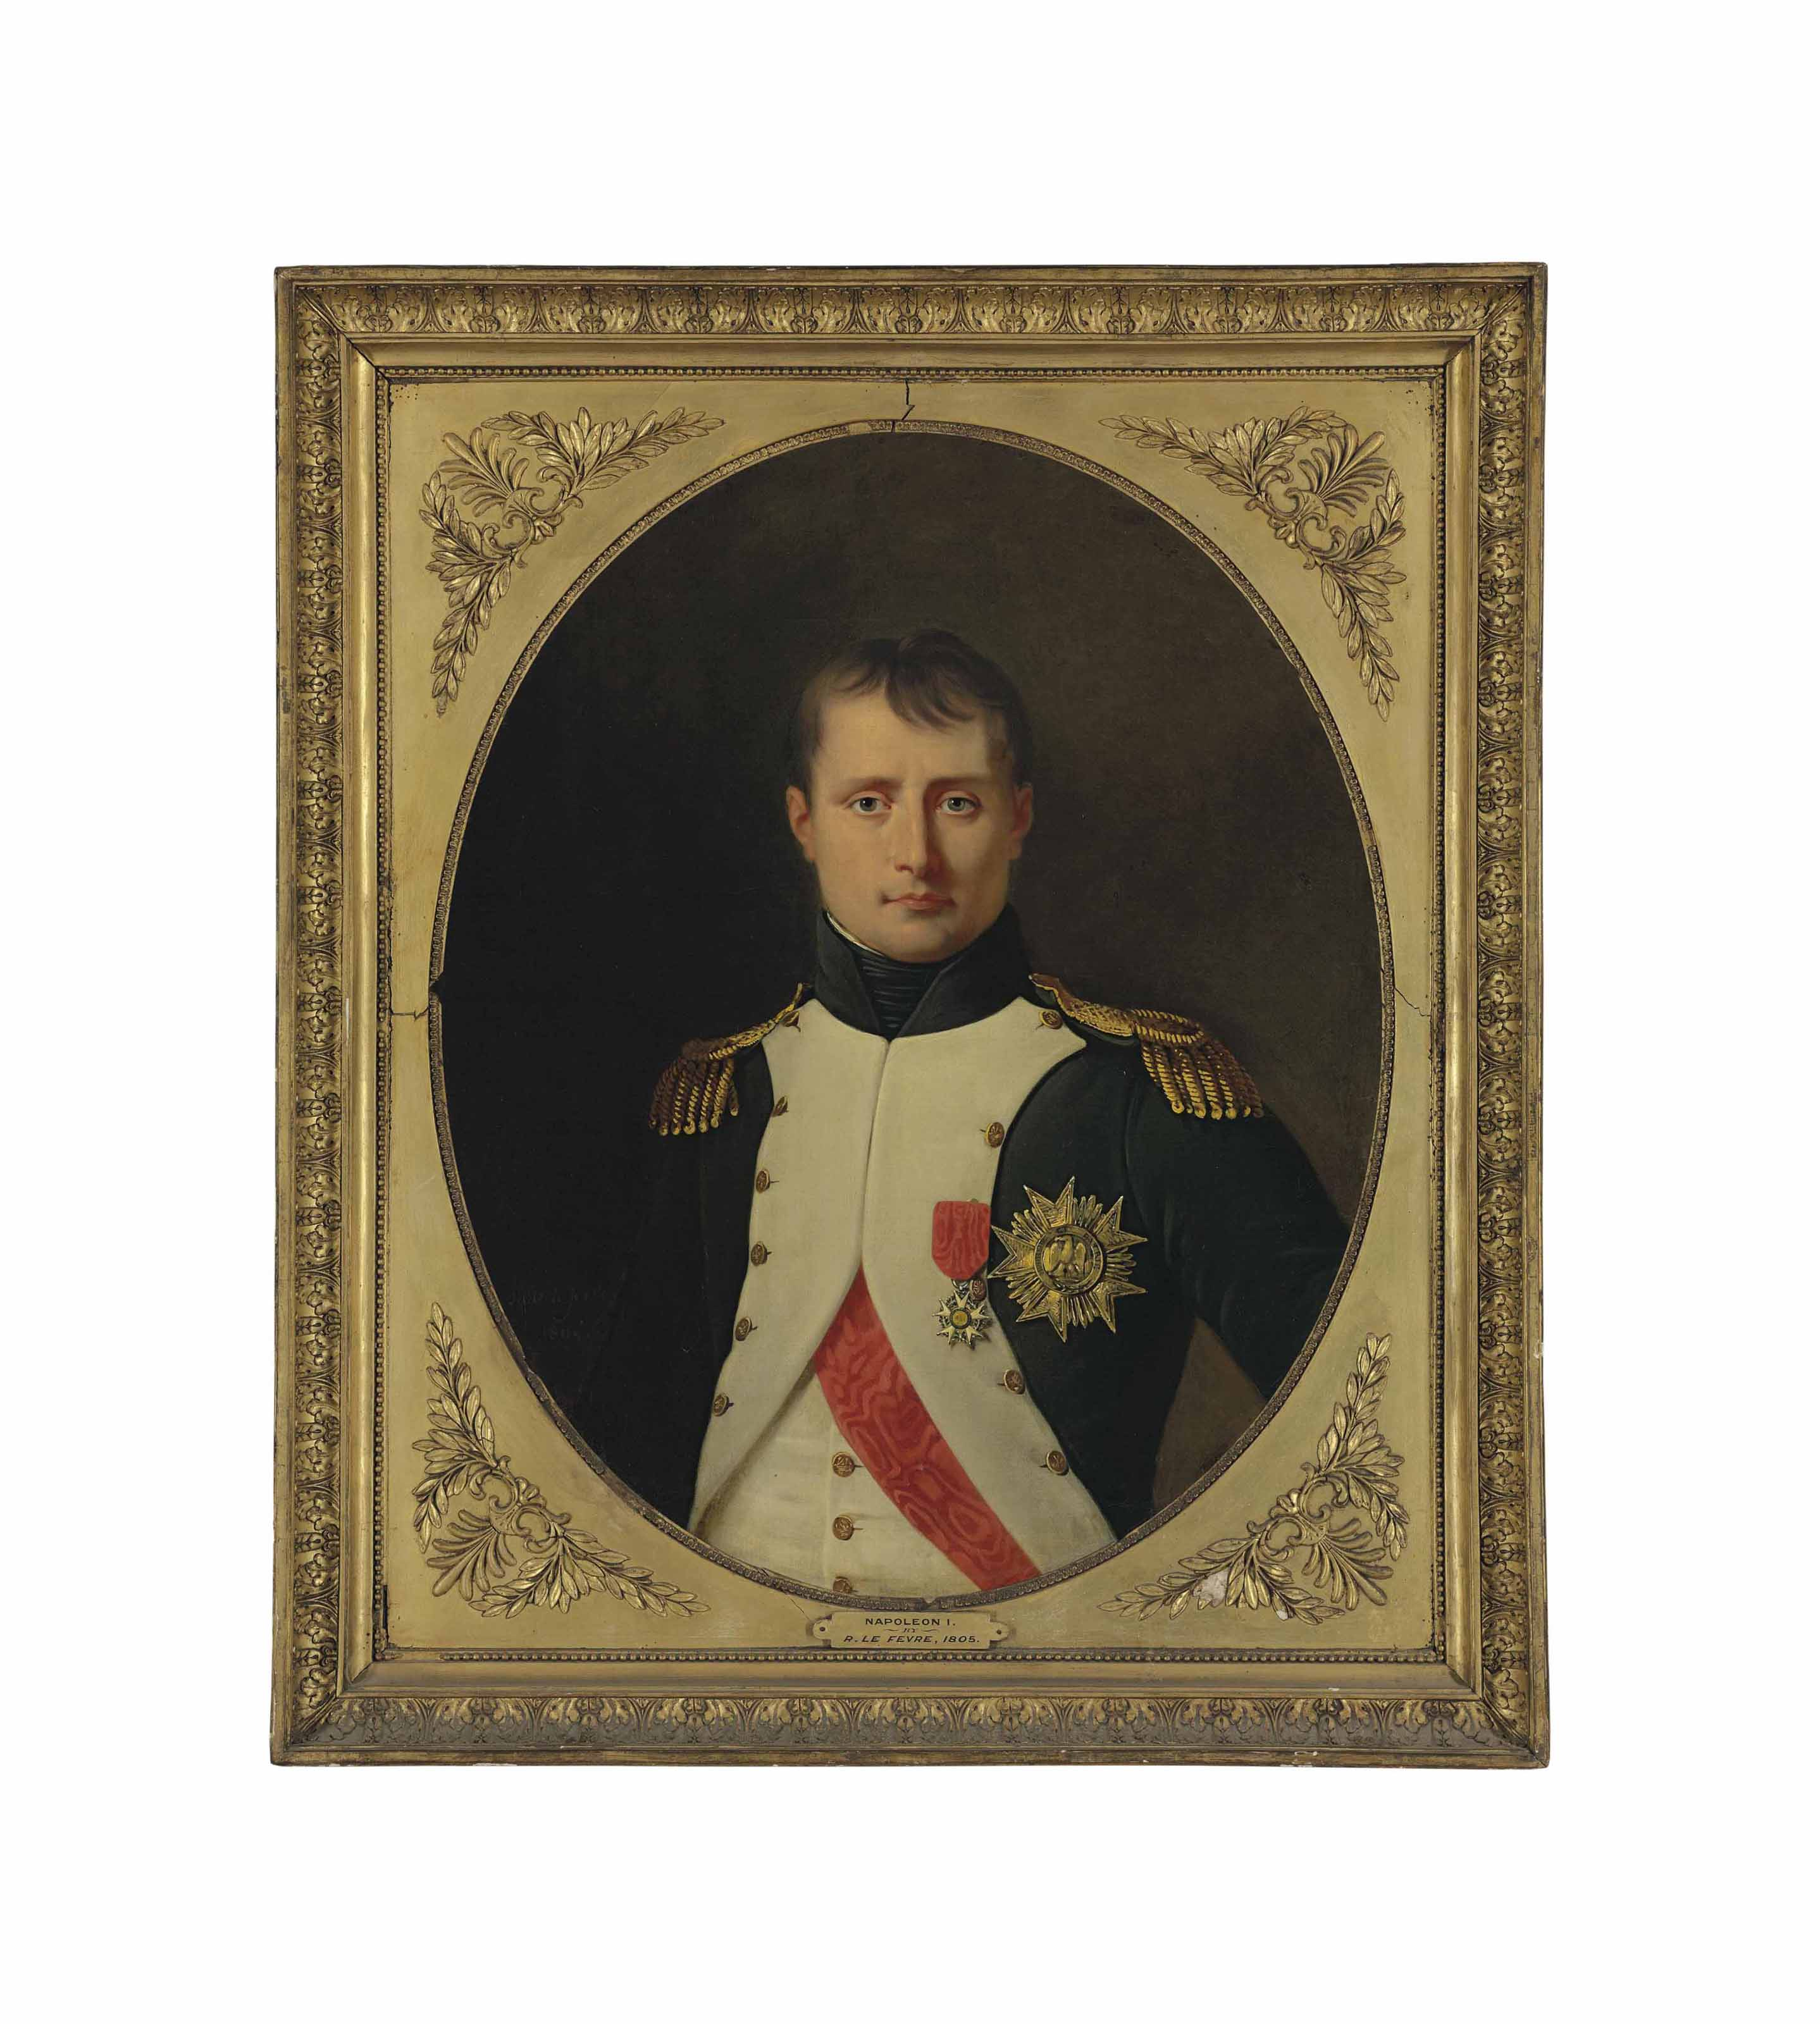 Portrait of Emperor Napoleon (1769-1821), half-length, as Colonel of the Foot Grenadiers of the Imperial Guard, wearing the cross and Grand Eagle of the Légion d'Honneur, in a painted oval